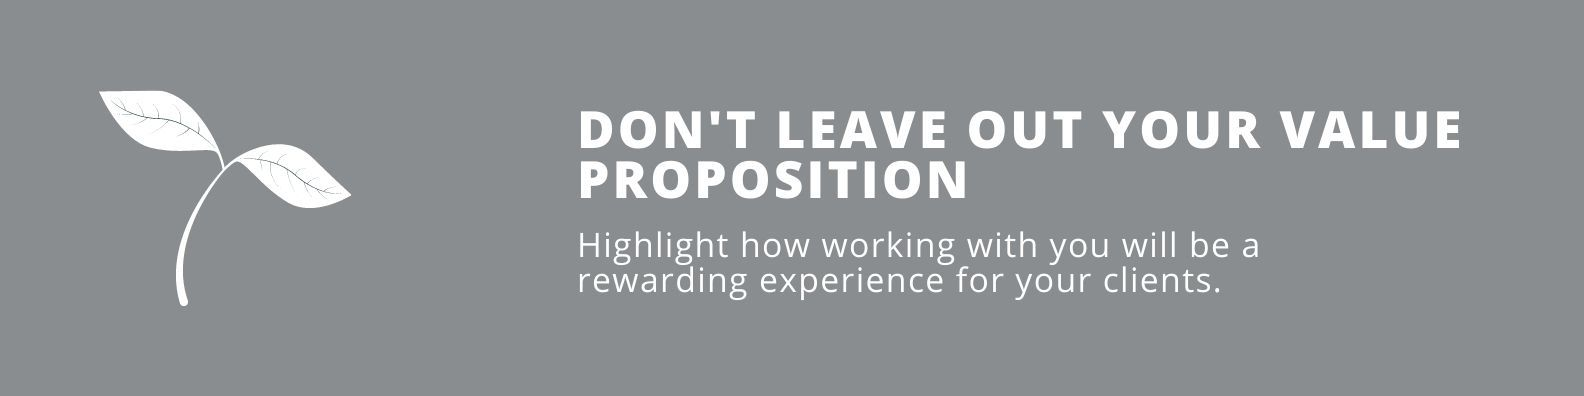 Don't Leave Out Your Value Proposition